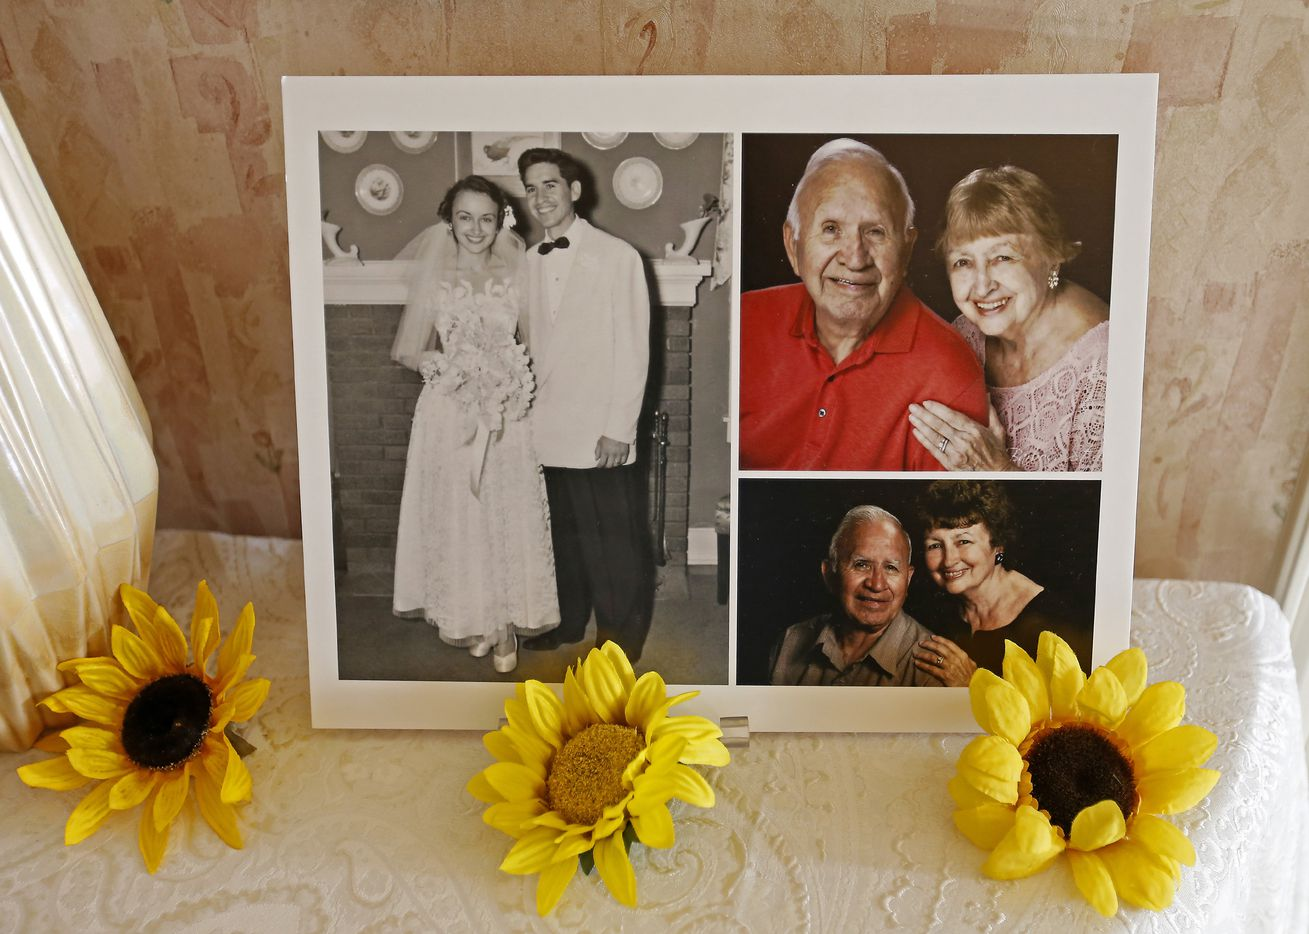 Photos of Frank and Carole Barbosa sit on the table at their 65th wedding anniversary celebration at their daughter Ani Stone's home in Dallas, Wednesday, July 26, 2017.